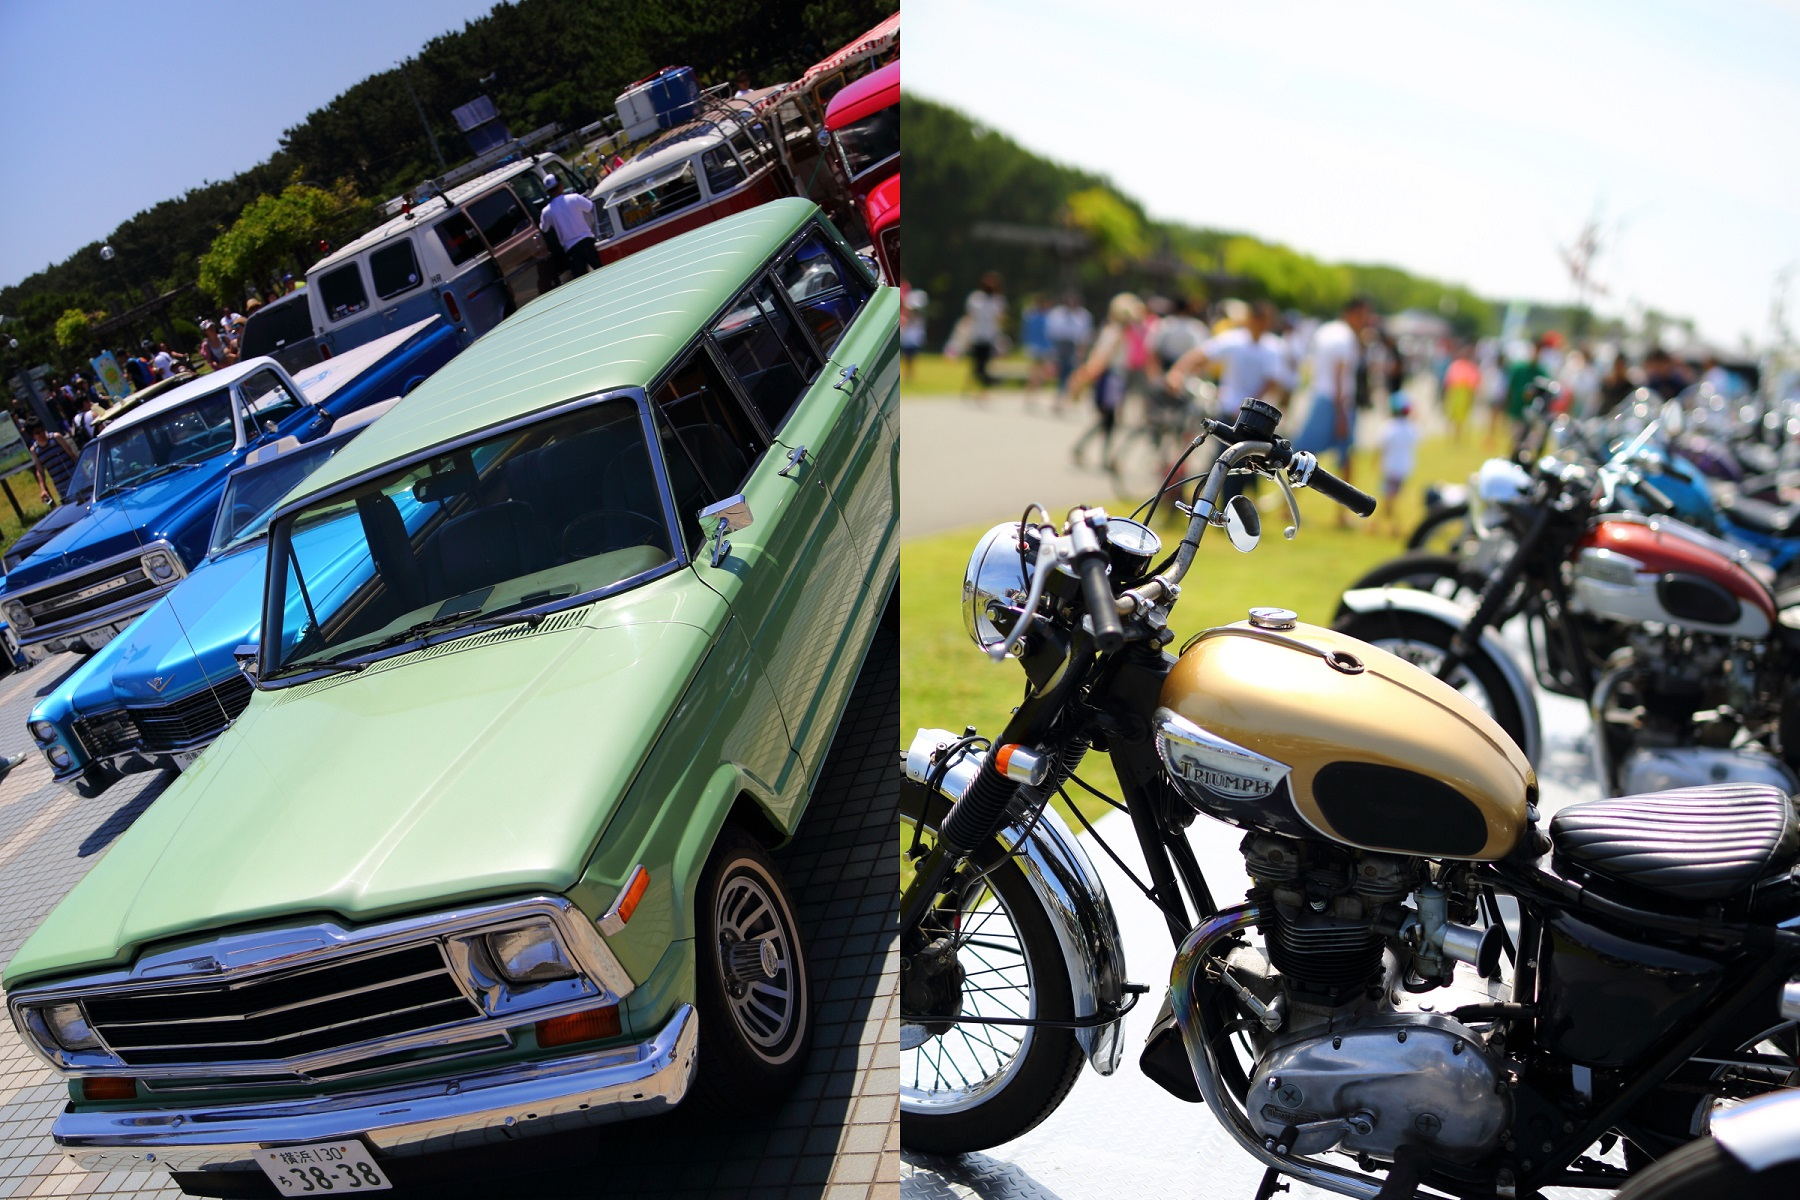 VINTAGE CAR & MOTORCYCLE